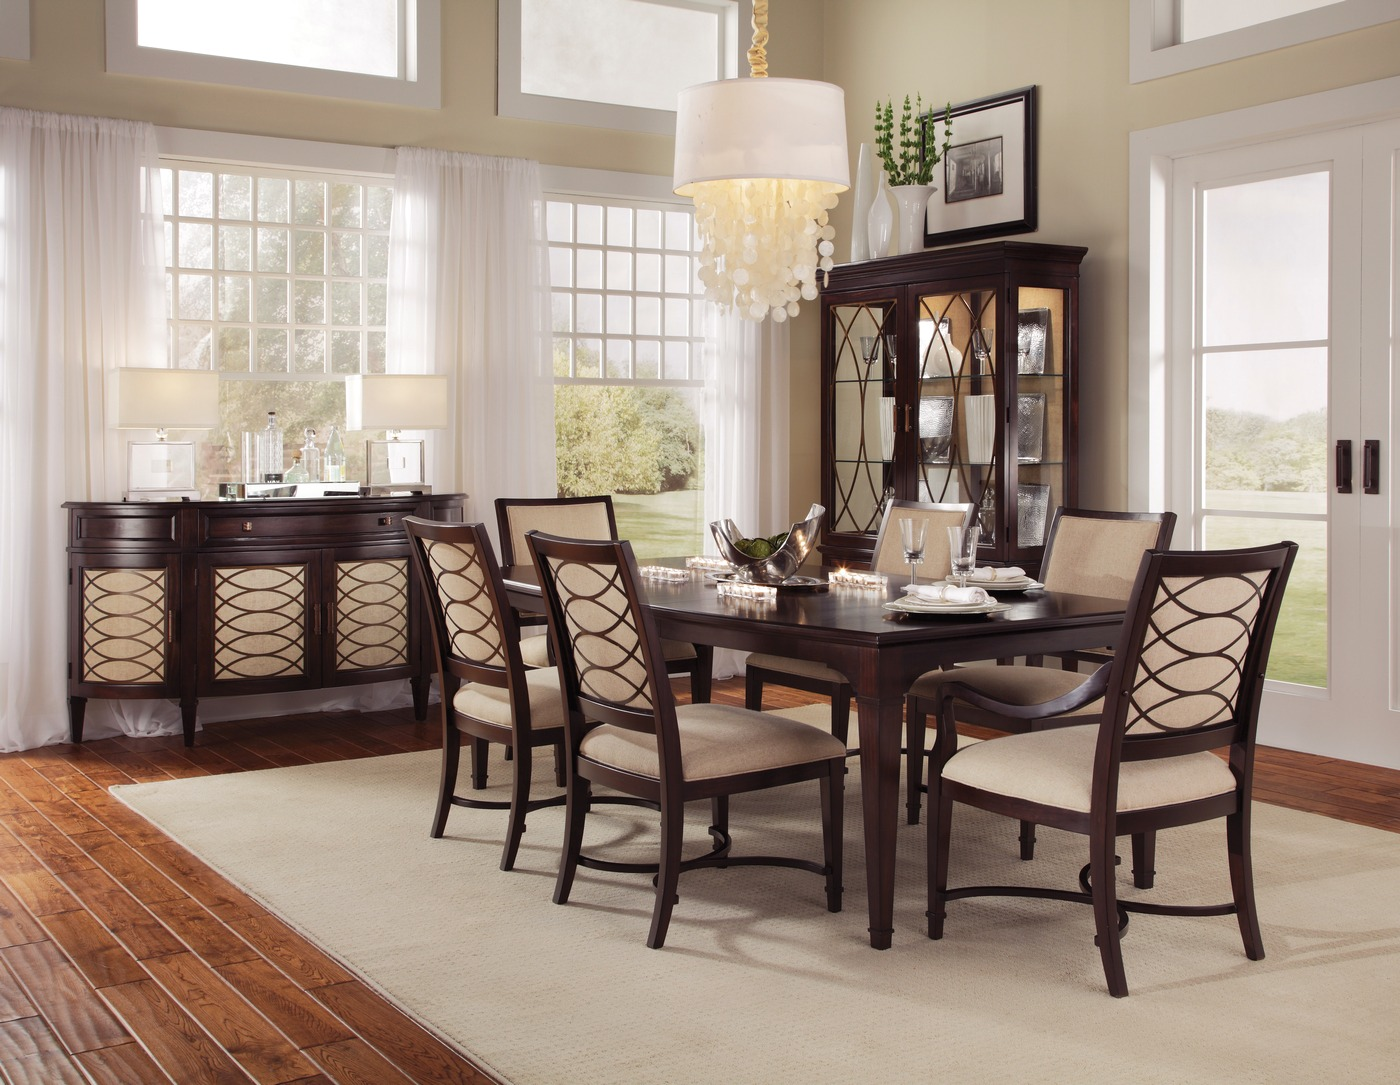 Dining Chairs Set Intrigue Transitional Contemporary Dark Wood Formal Dining